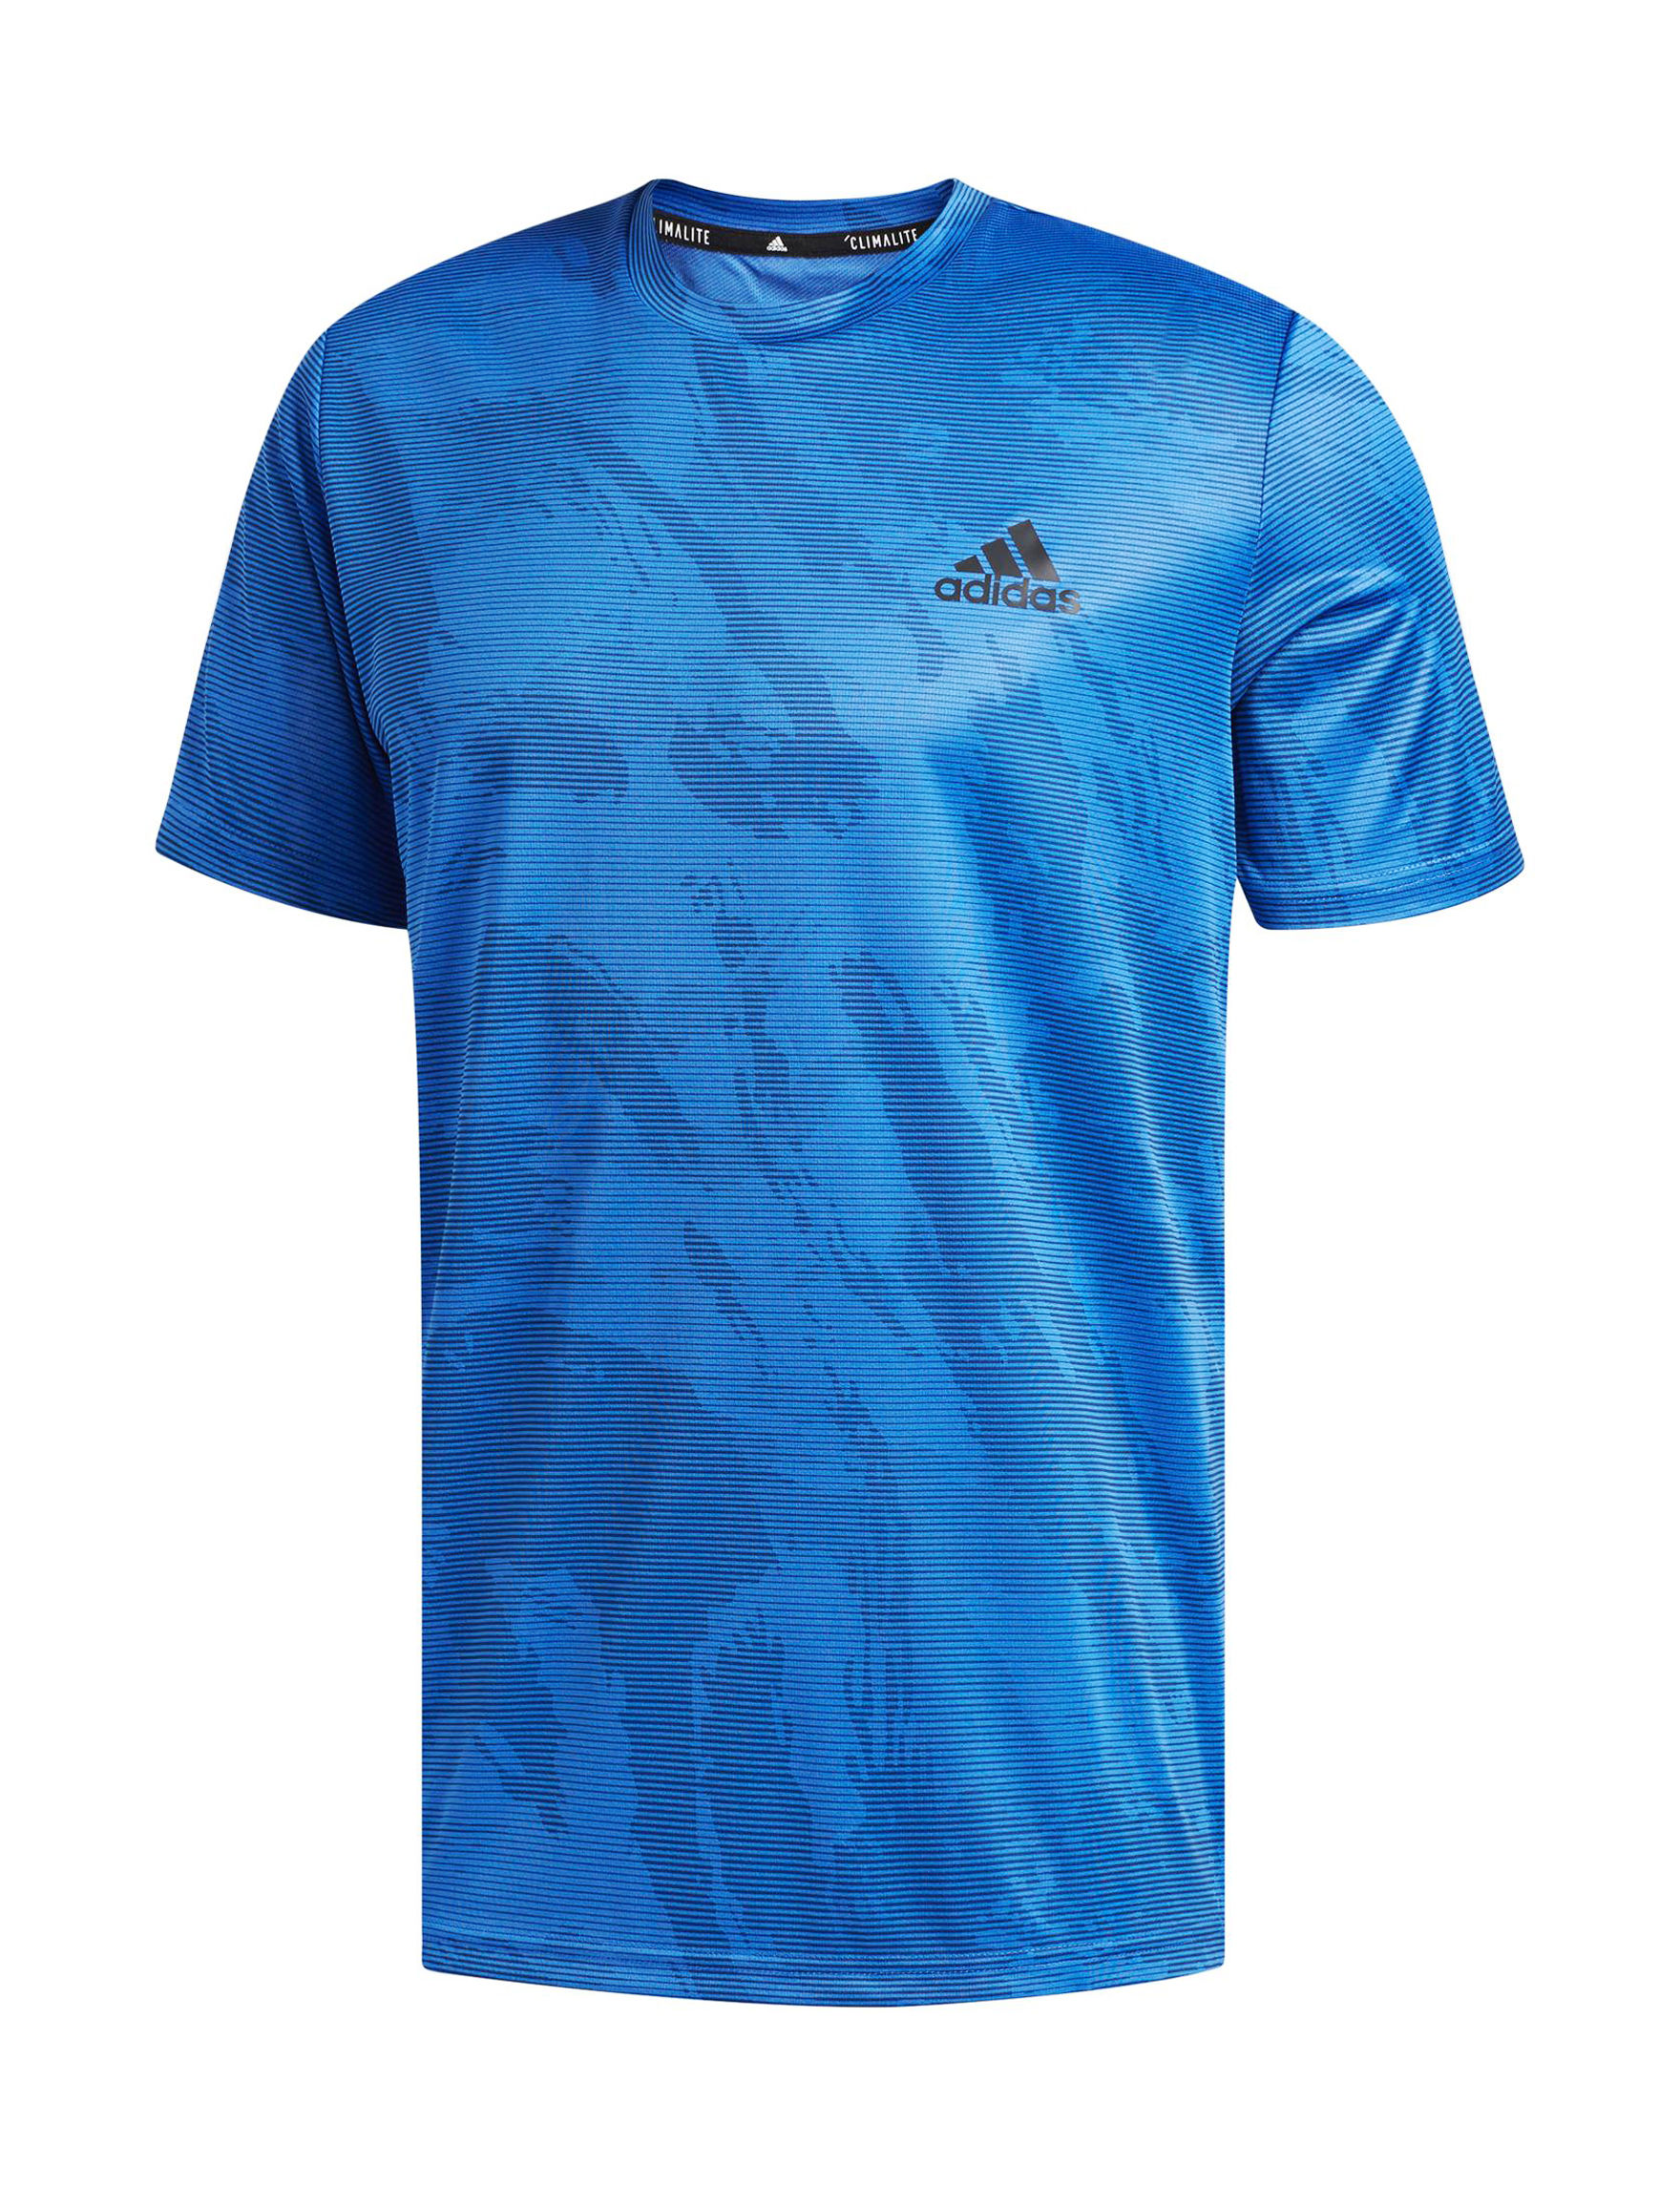 Adidas Blue Tees & Tanks